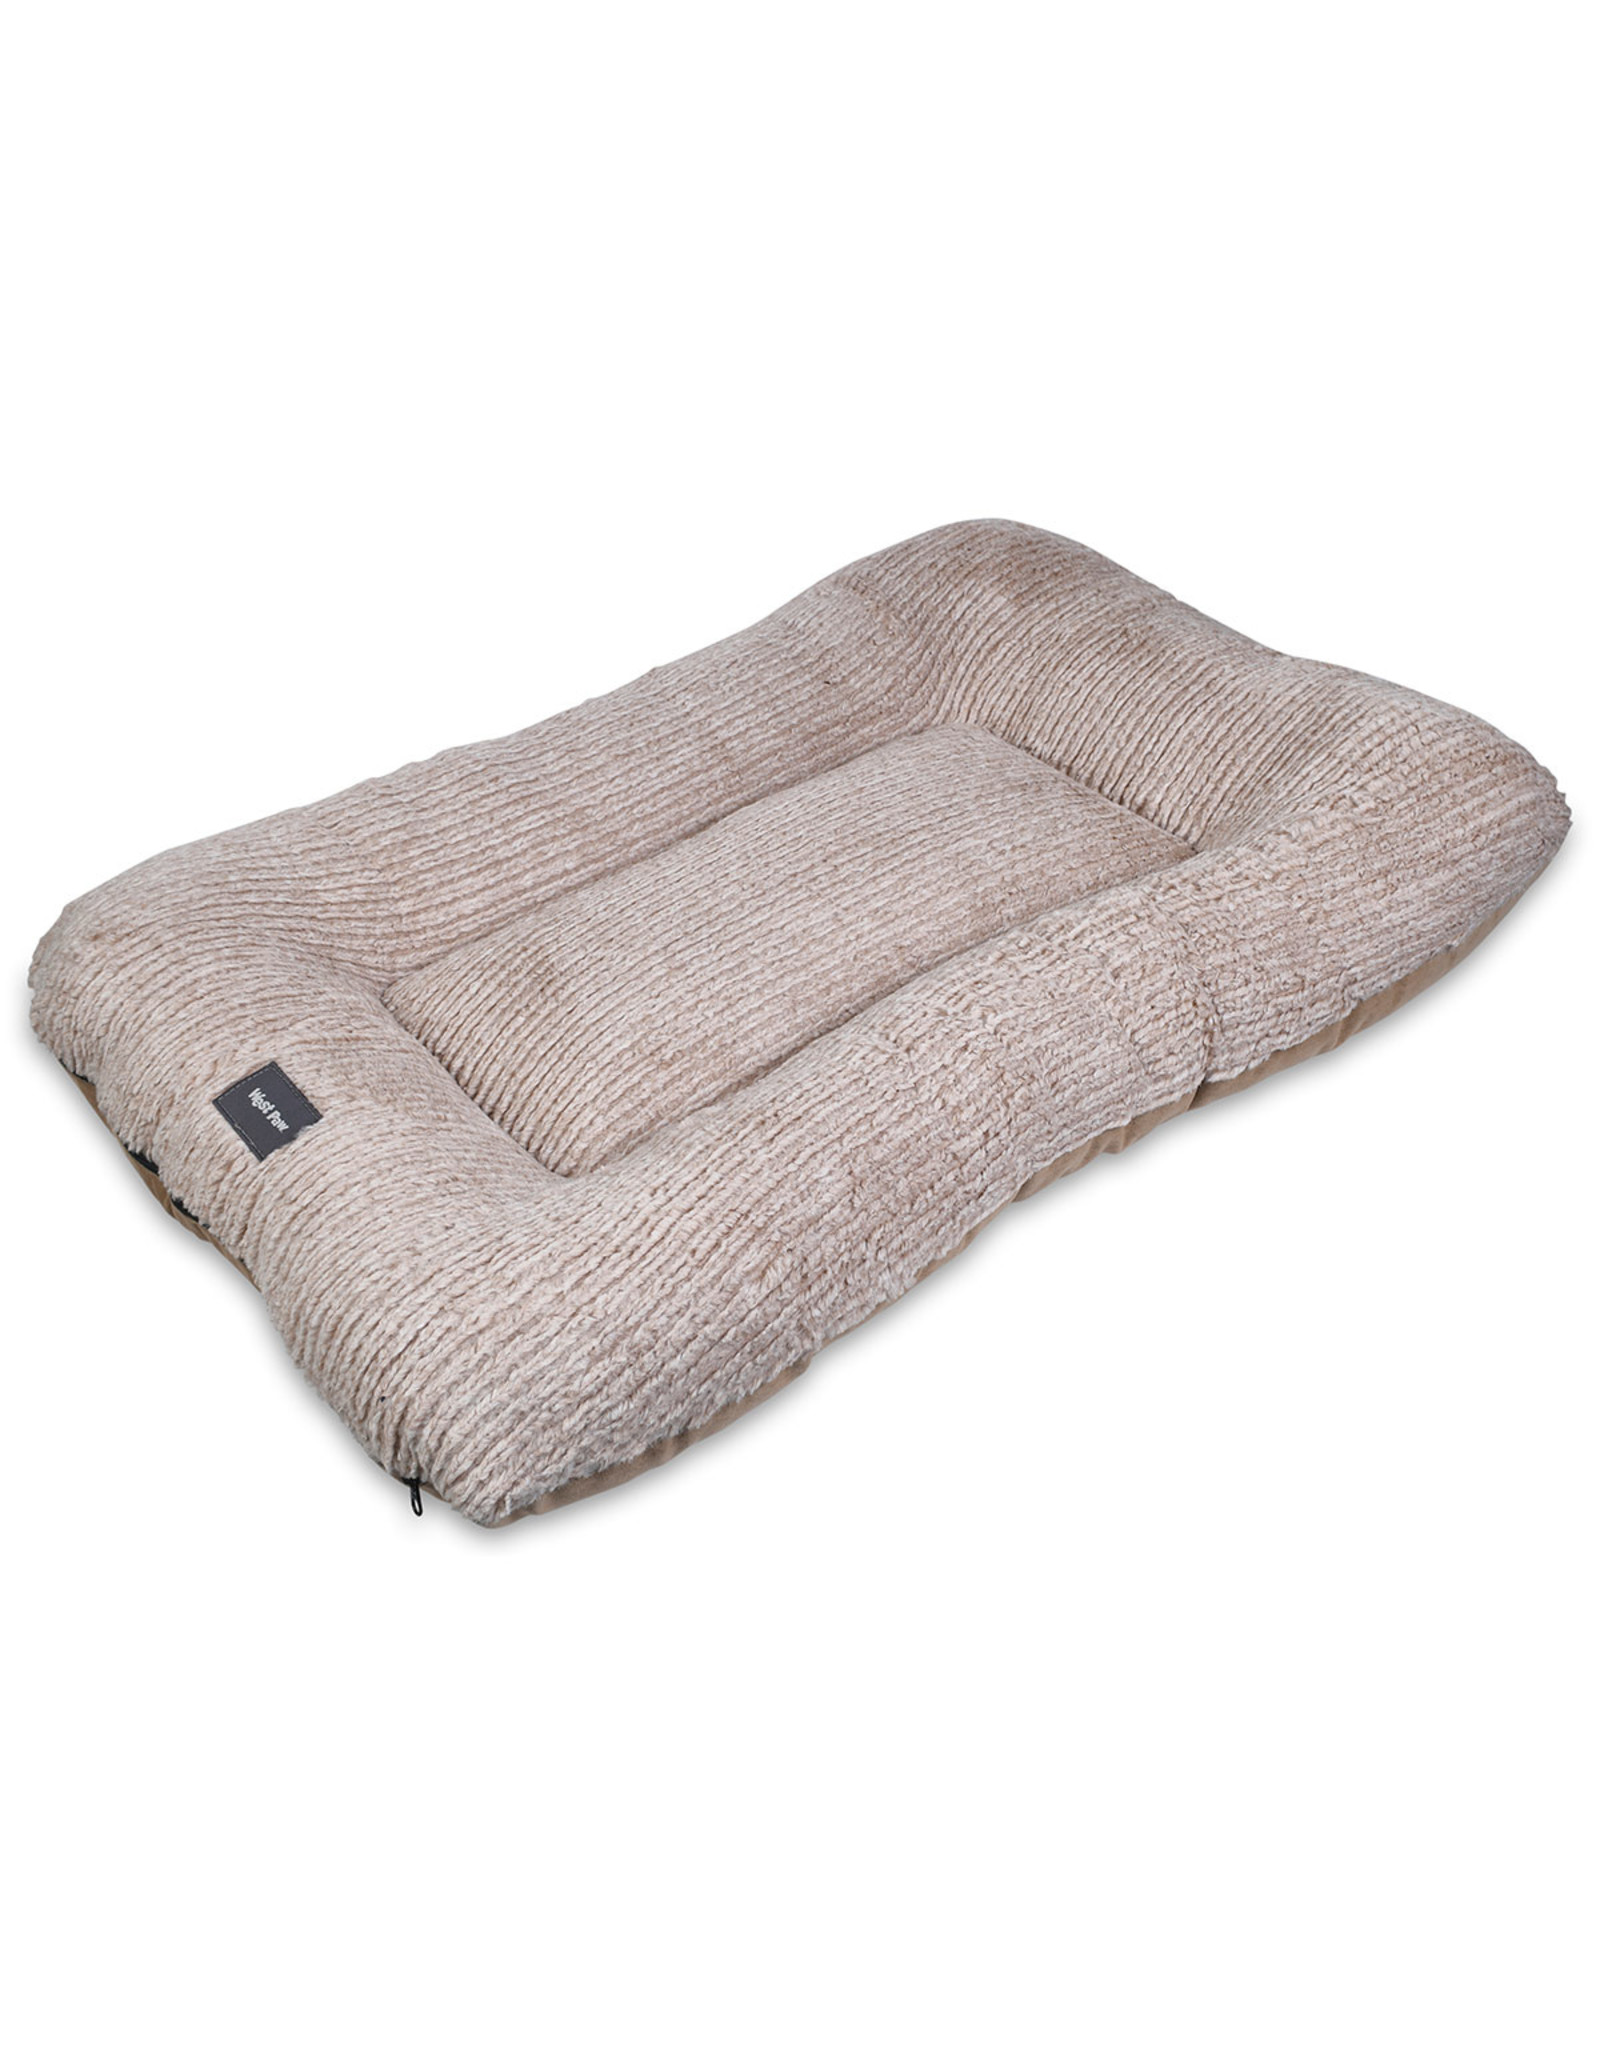 West Paw Designs Westpaw: Heyday Bed® - S 26x19 Oatmeal Heather